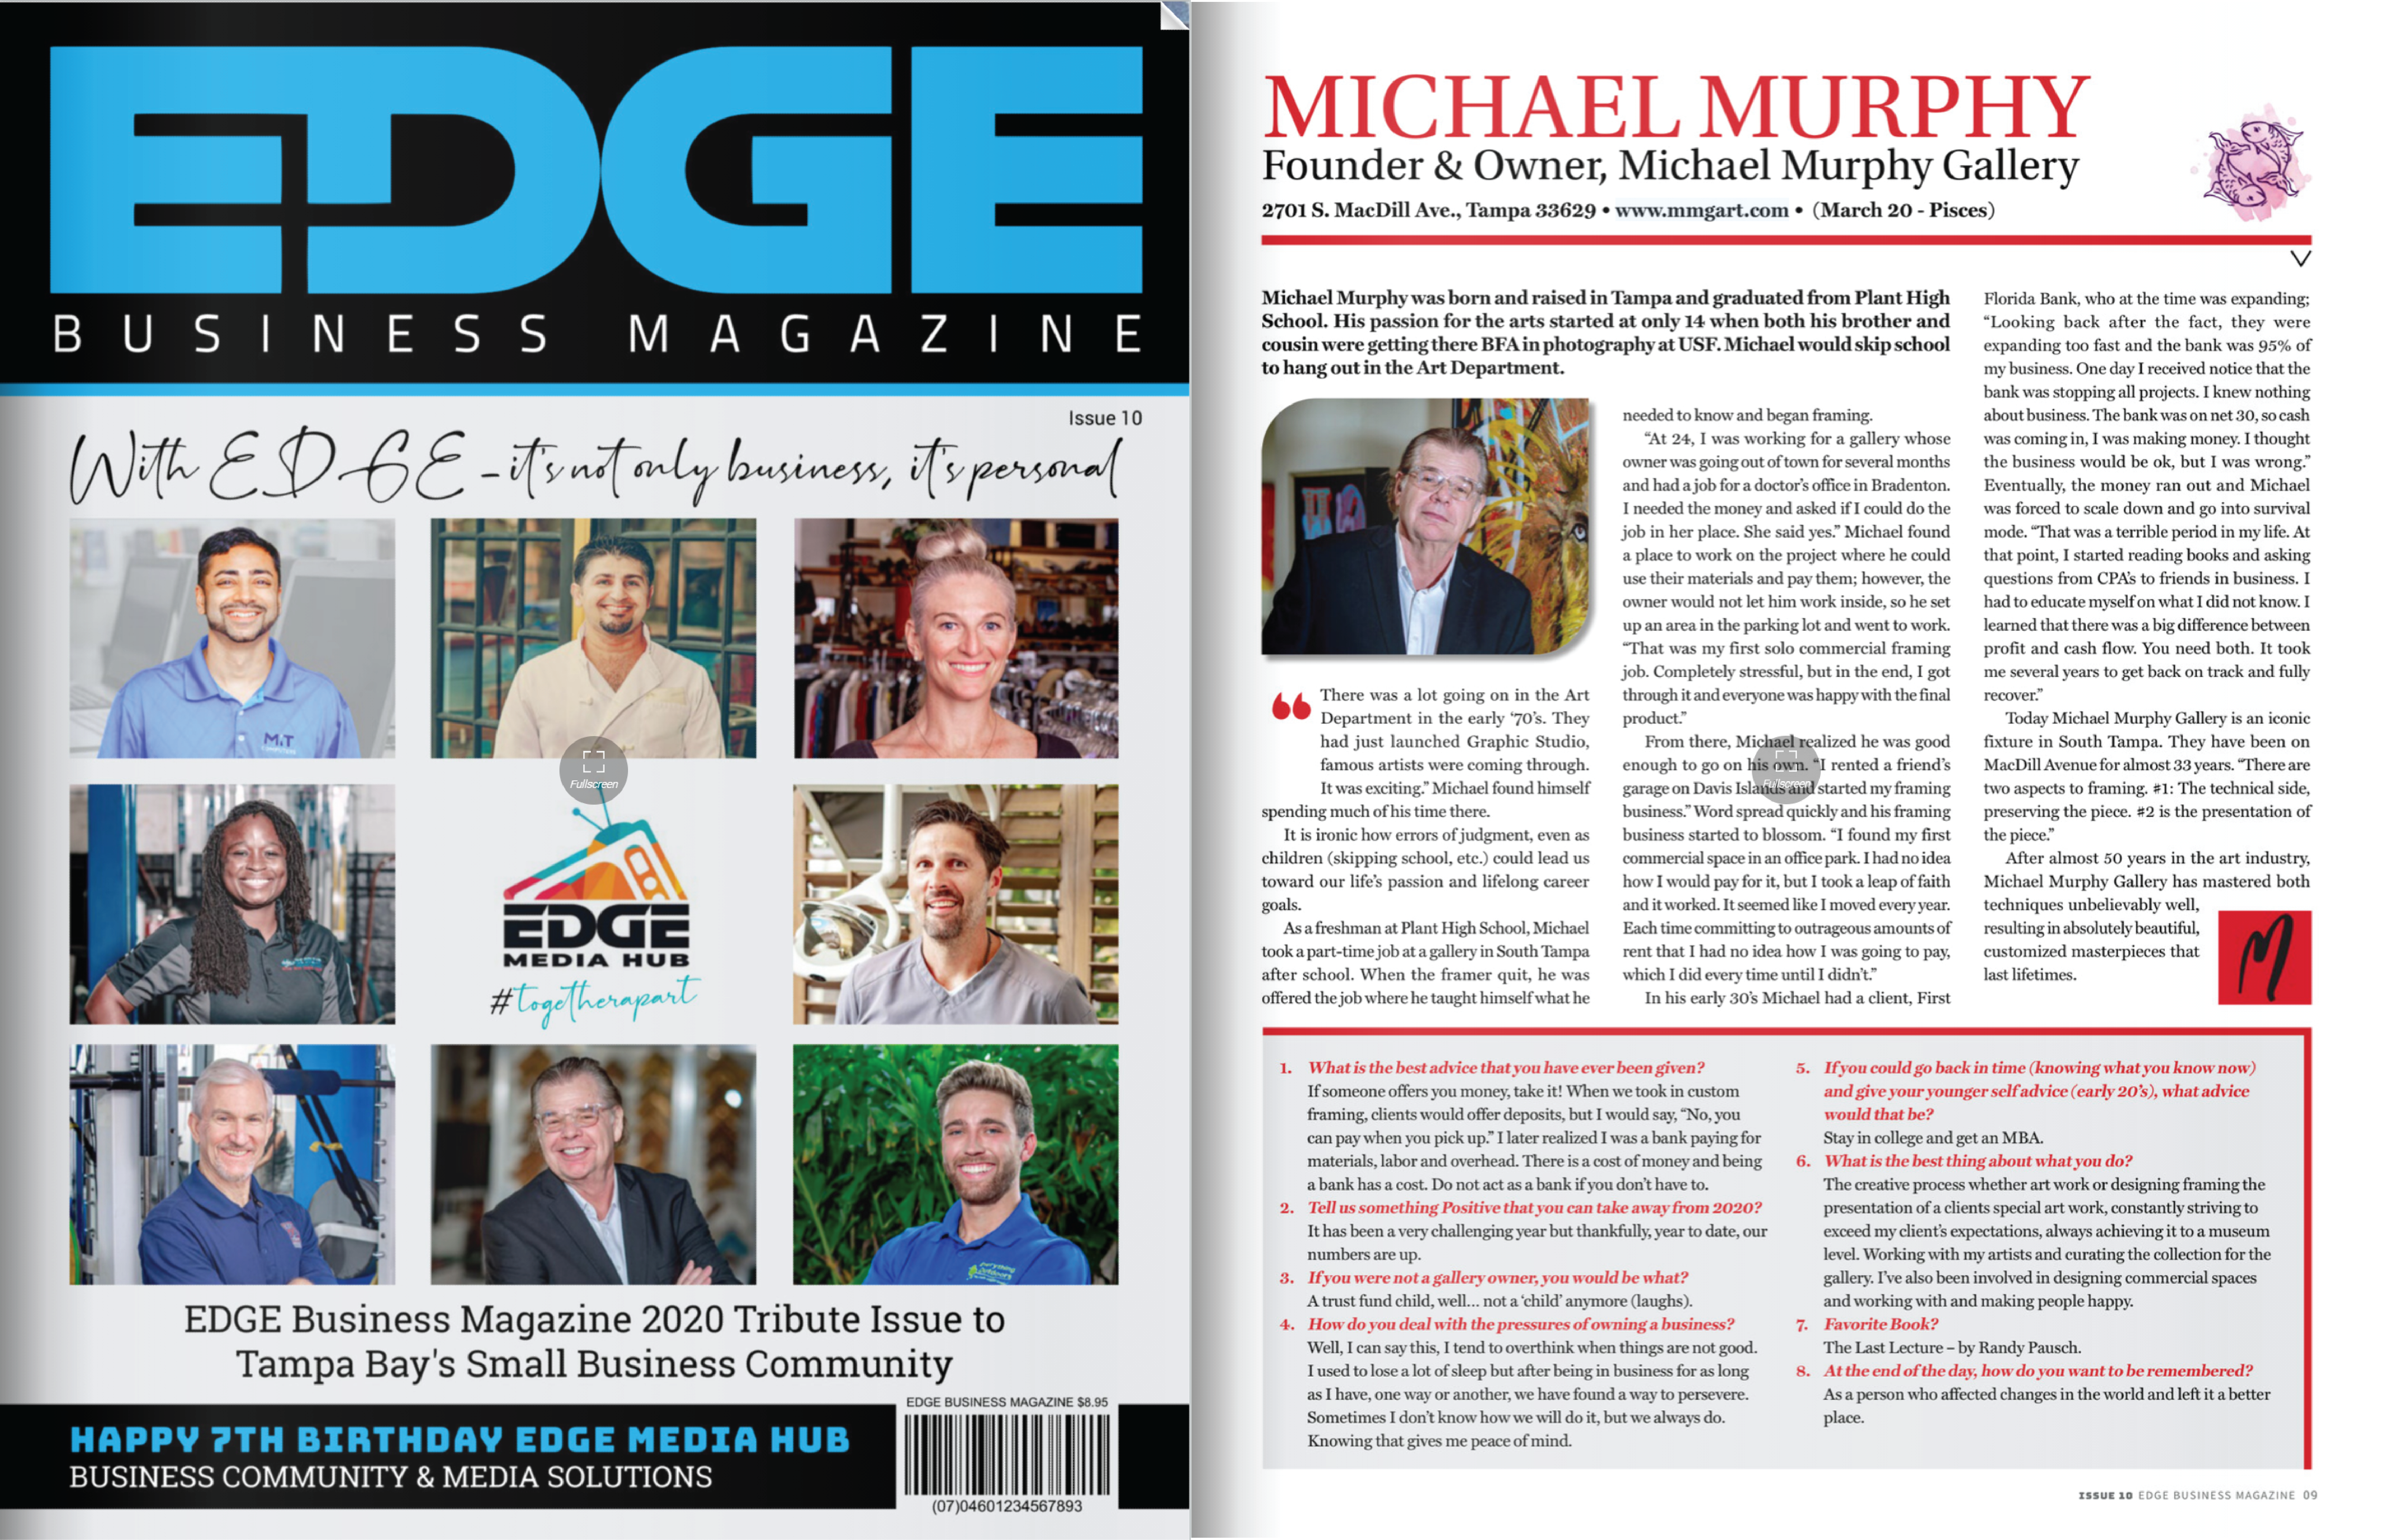 EDGE Business Magazine Michael Murphy Gallery Feature Article